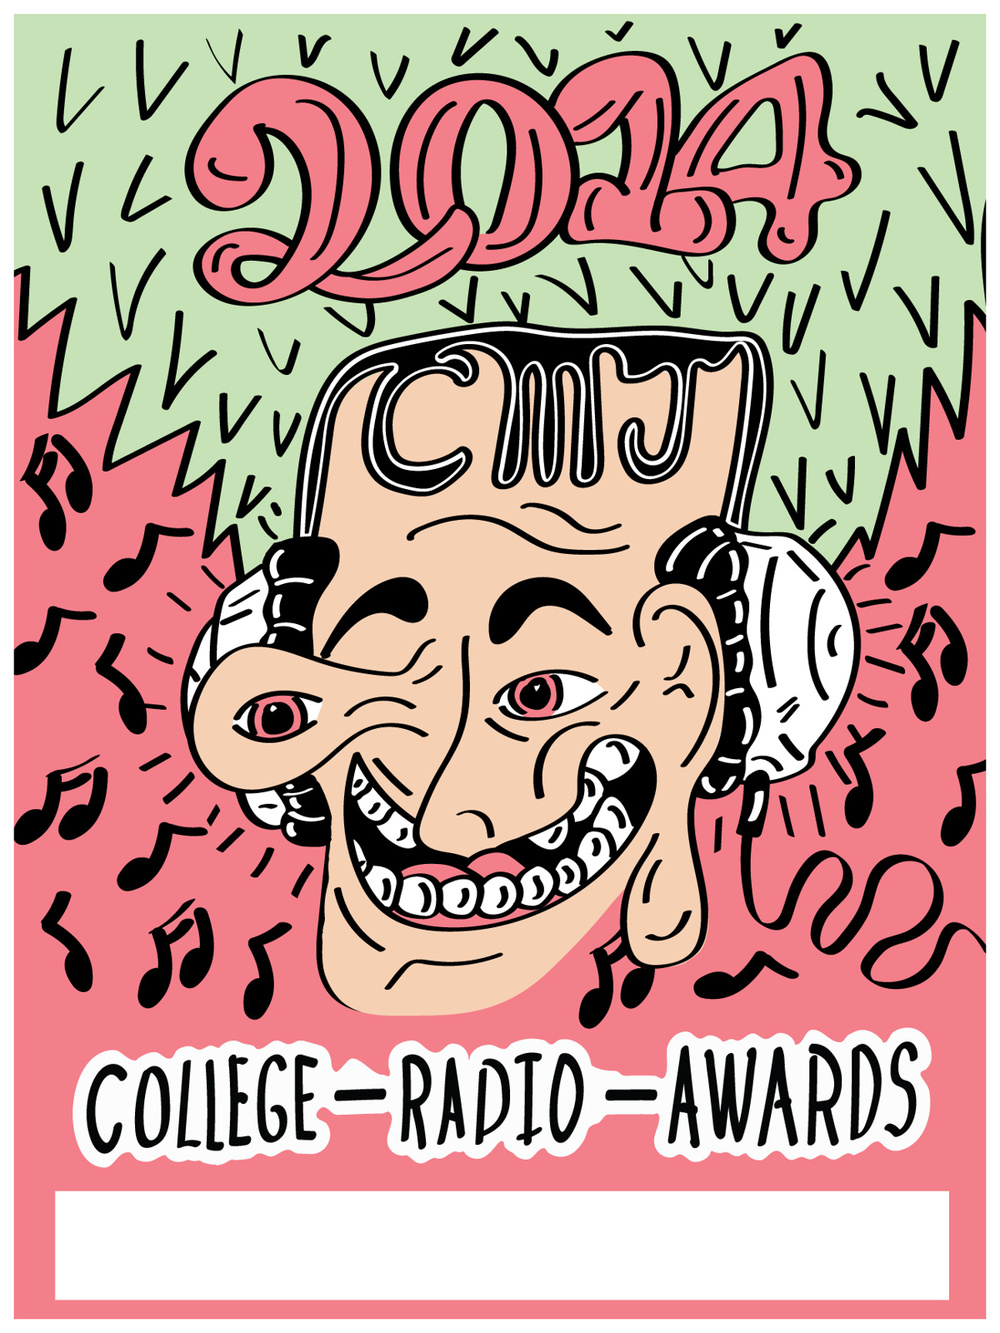 While in my second year of work at CMJ  ,   I was asked to design a   screen-printed   College Radio Awards poster. Of course I was very excited about the project and decided to push the envelope a bit. I know that the students look forward to these   awards   and I wanted to make something that really stuck out and was bright and colorful. I decided to go with this psychedelic melting   Picasso-like   face with massive green hair. I was limited to four colors for the   print. Working   with that limitation  ,   I   chose     pink   as the background for the poster to keep it eye-catching and   bold  . After adding in the music notes  ,   I noticed it created   a look similar to   a watermelon. I was happy with the result and even more happy that this poster was approved. As   with   any print I produce  ,   I numbered and signed the set of 52 prints.